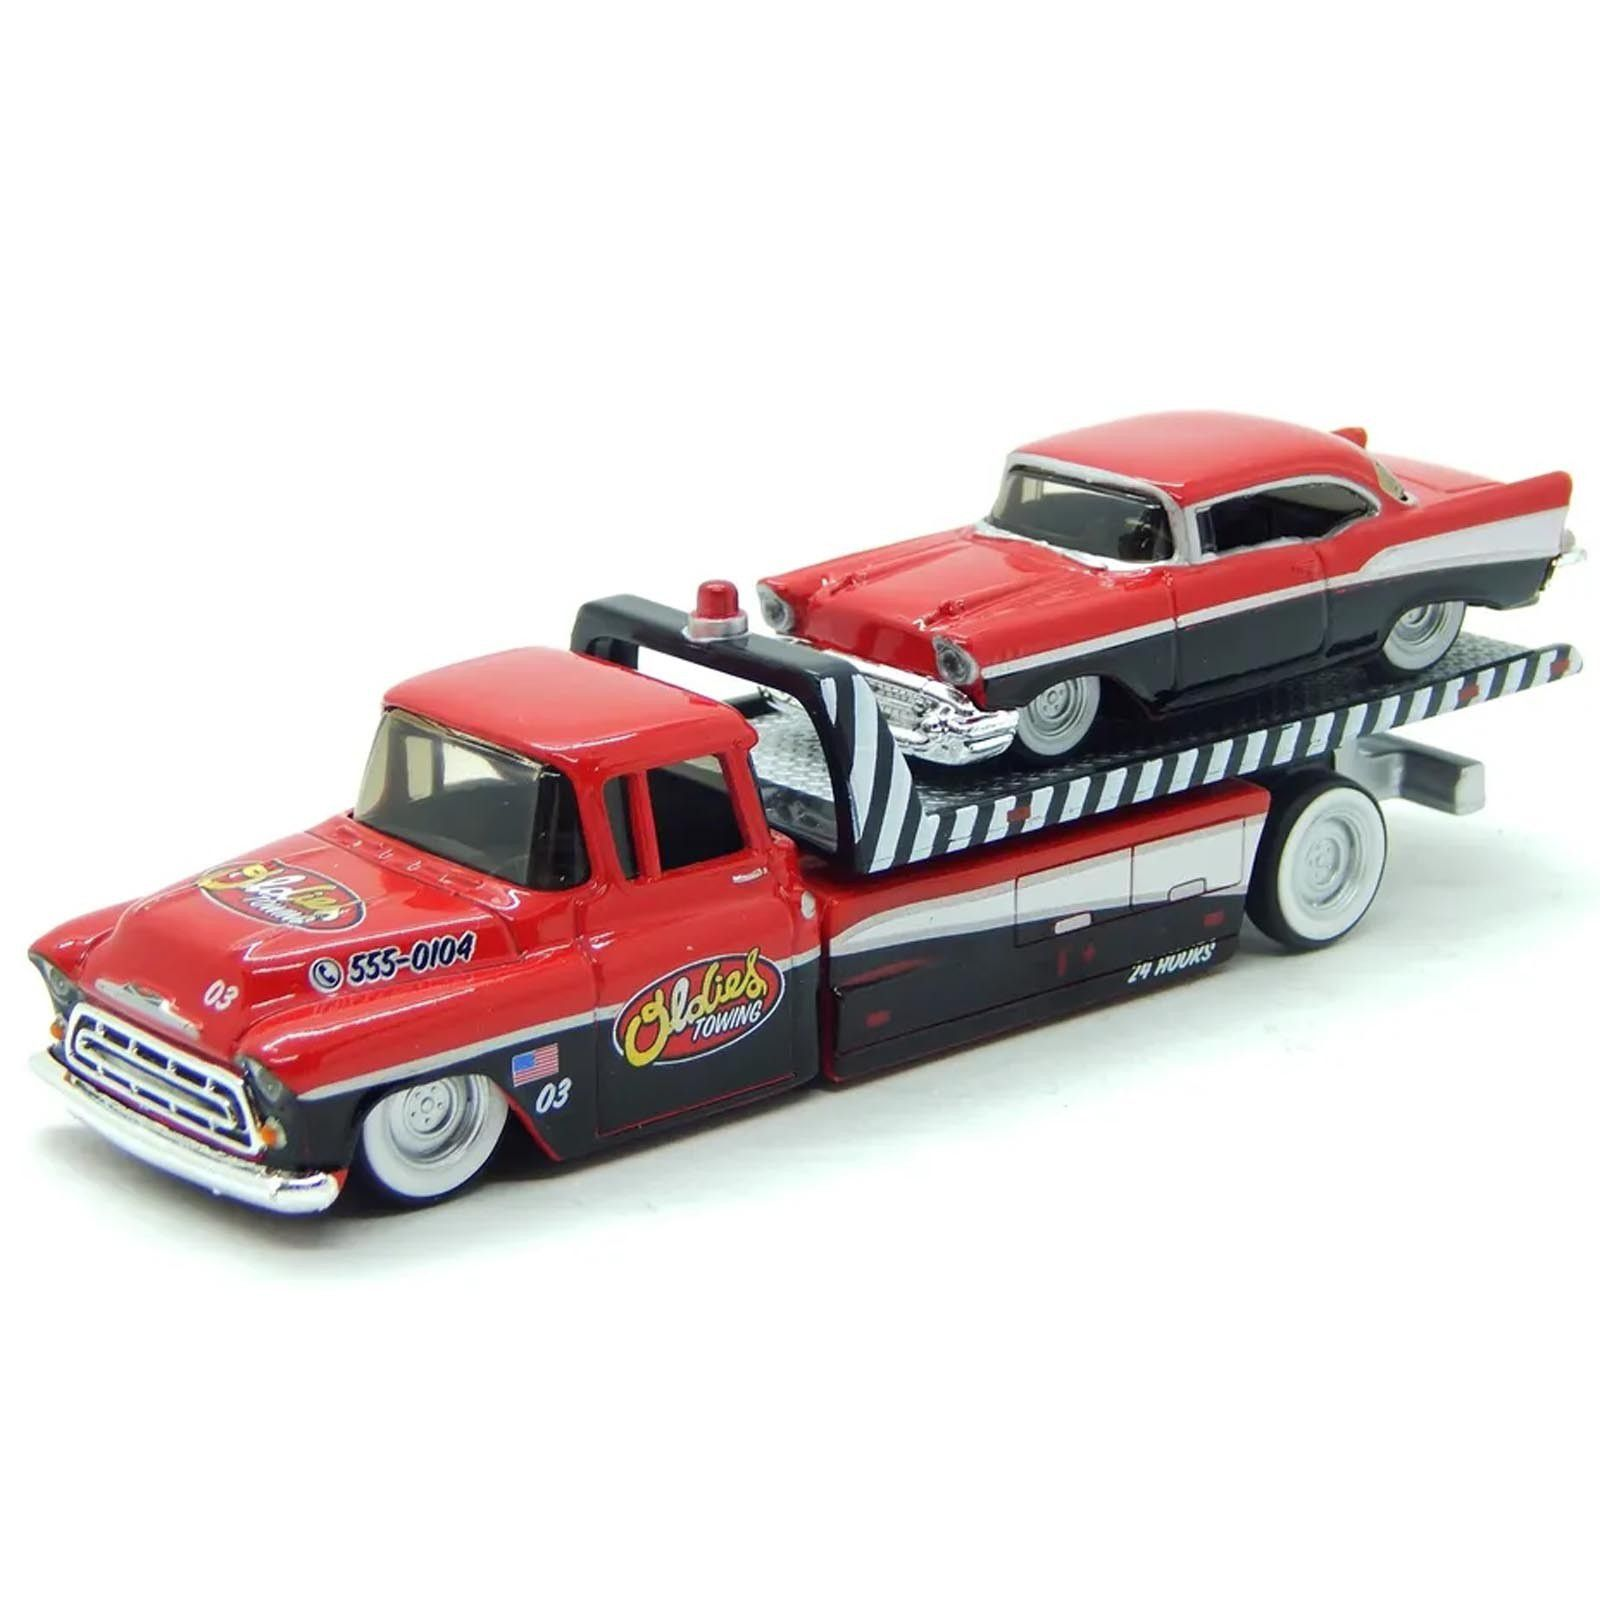 Maisto 1:64 Elite Transport - 1957 Chevy Flatbed / 1957 Chevy Bel Air     -   6143